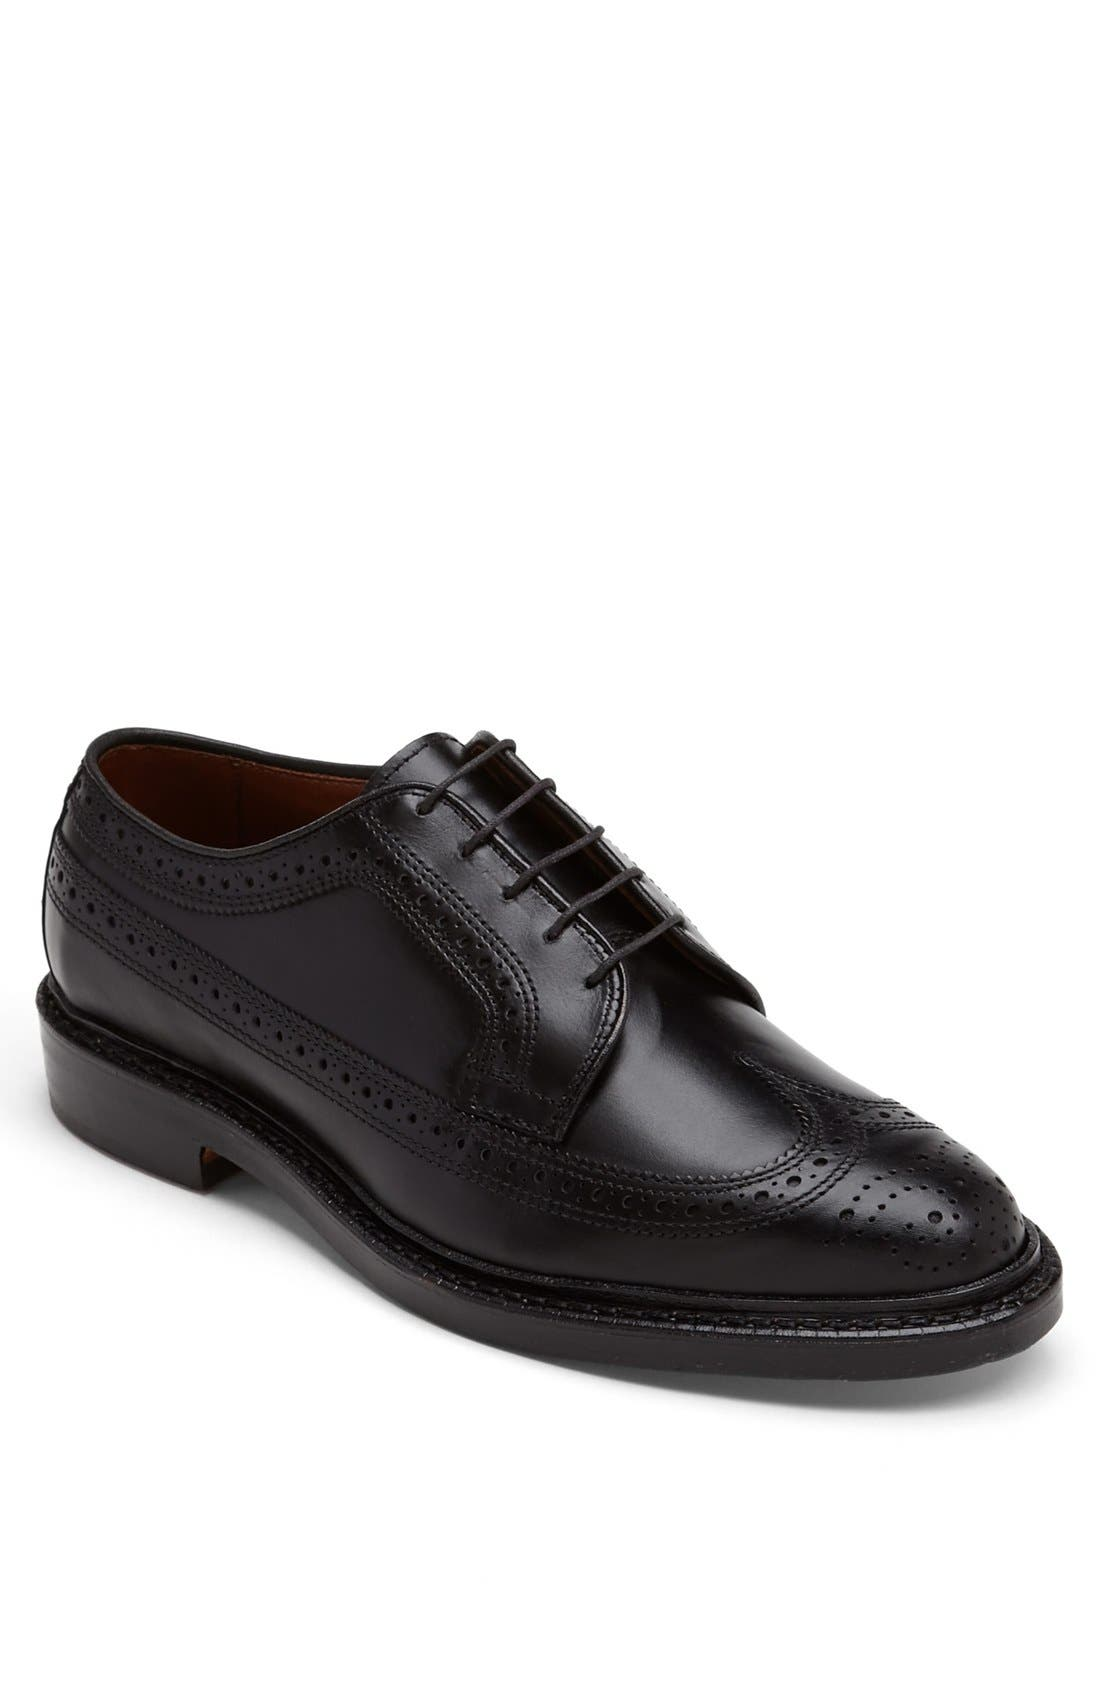 Alternate Image 1 Selected - Allen Edmonds 'MacNeil' Oxford (Men)